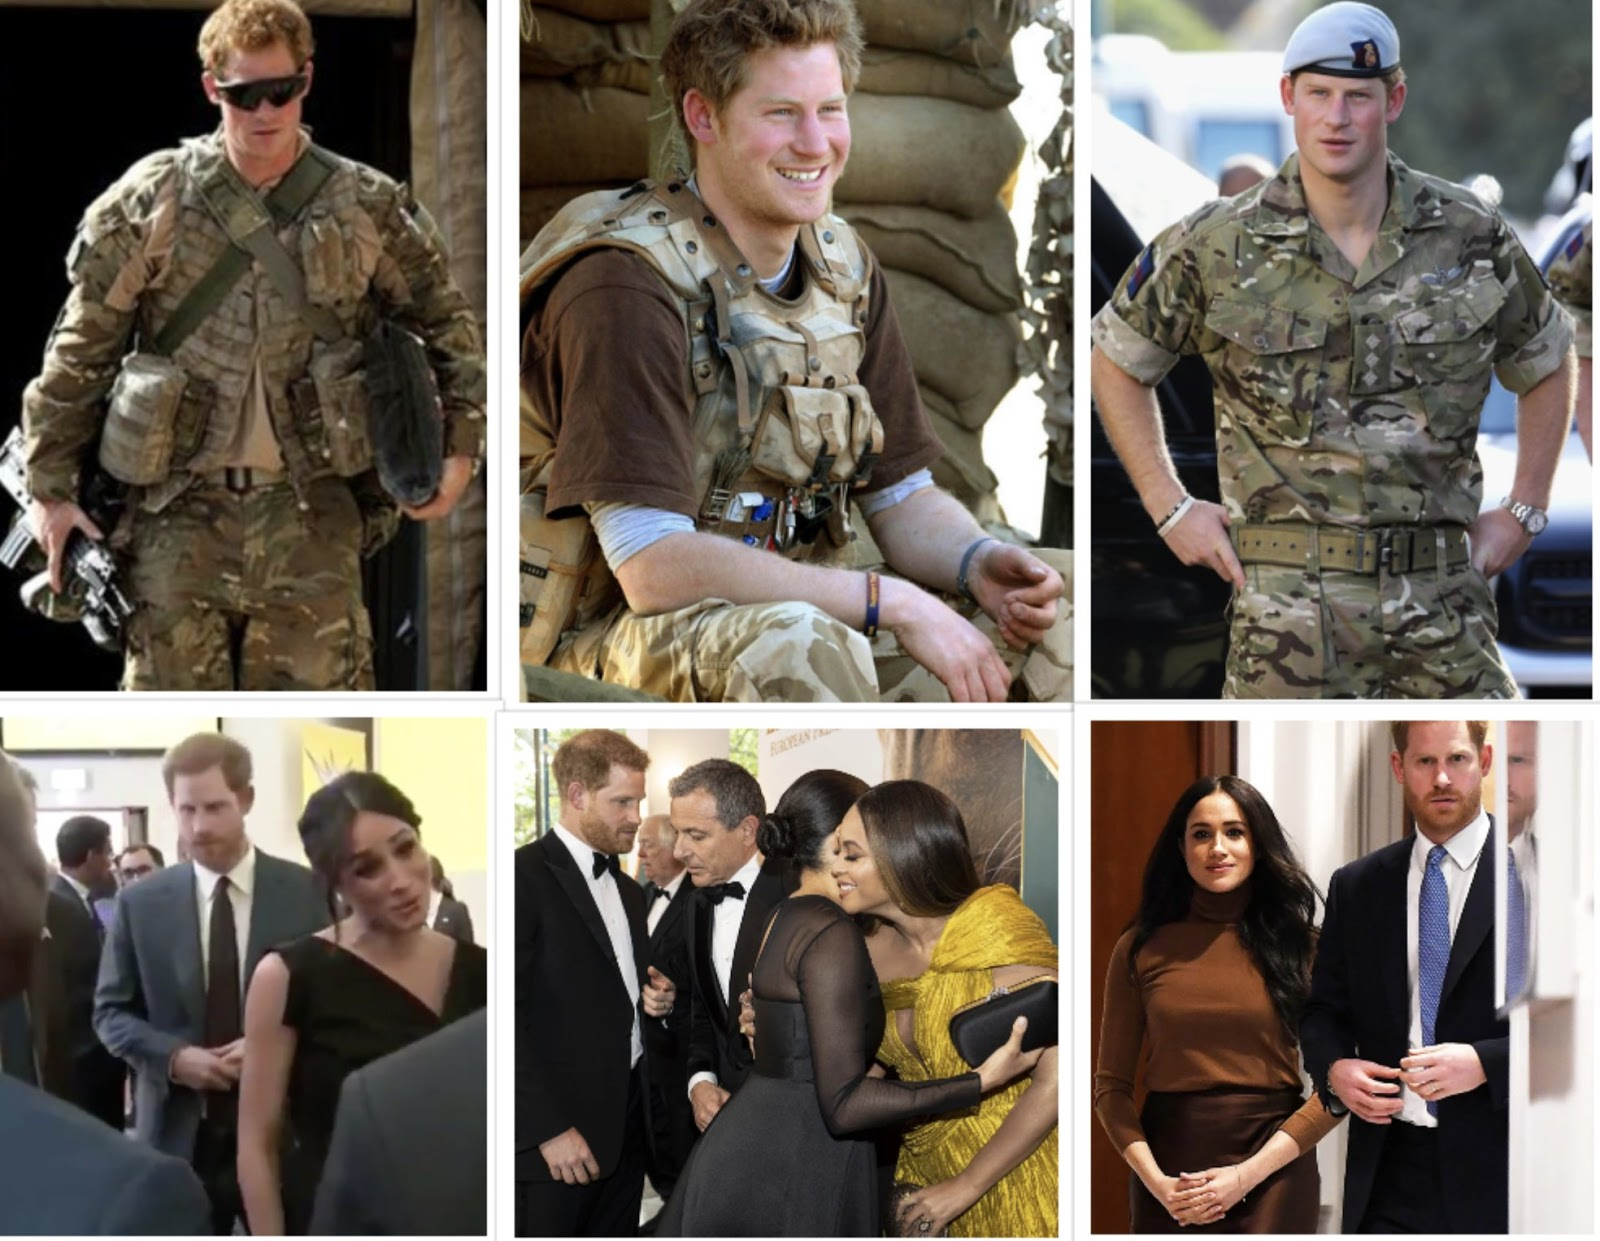 Prince Harry Looks Extra Good In Military Uniforms (Photos) 1